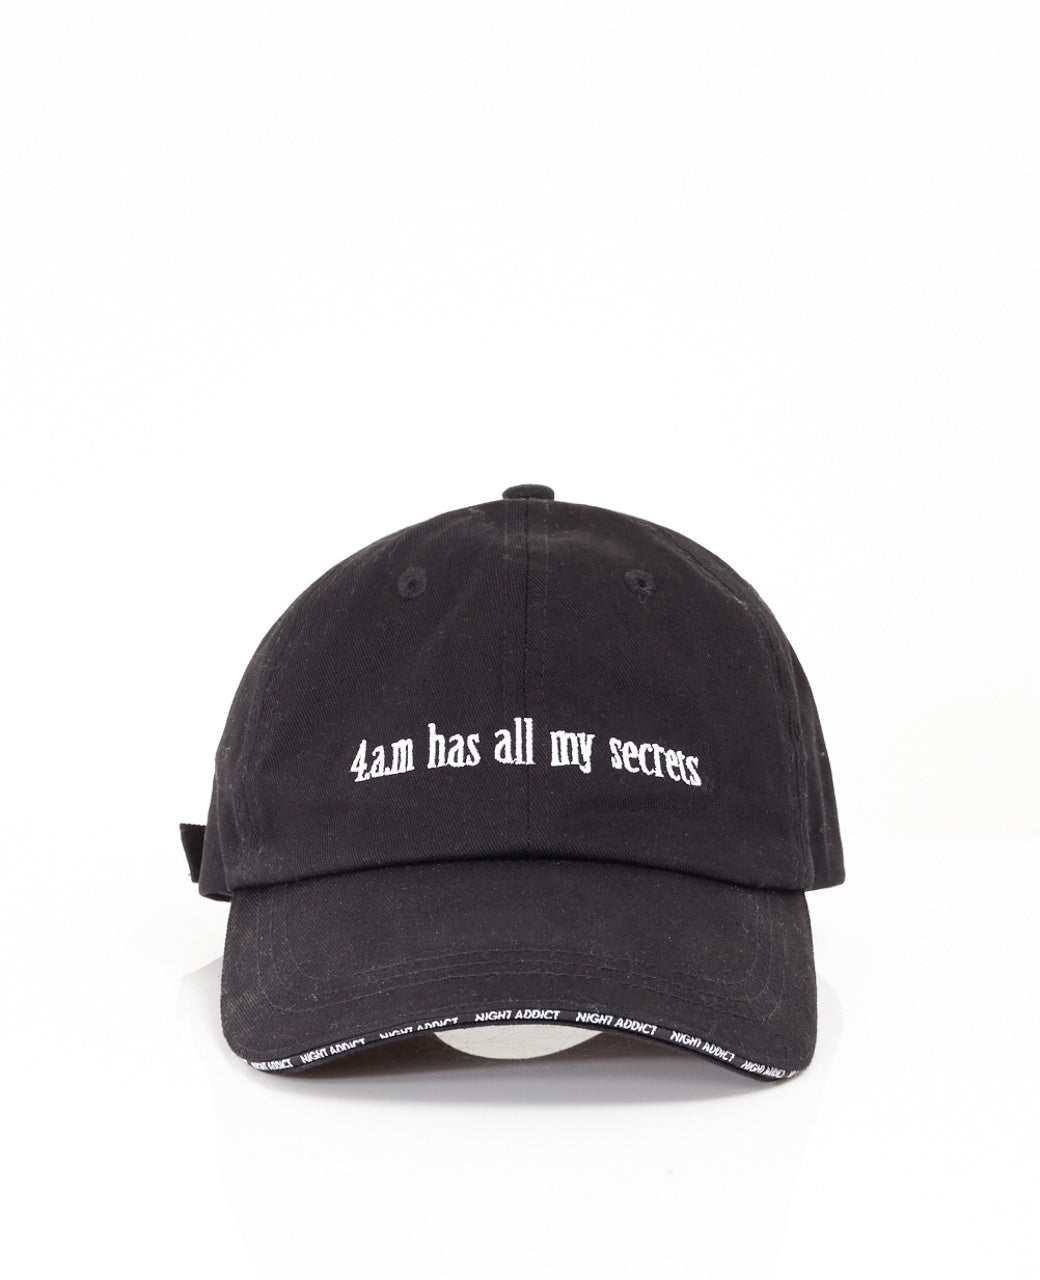 NIGHT ADDICT '4AM HAS ALL MY SECRETS' HAT FRONT